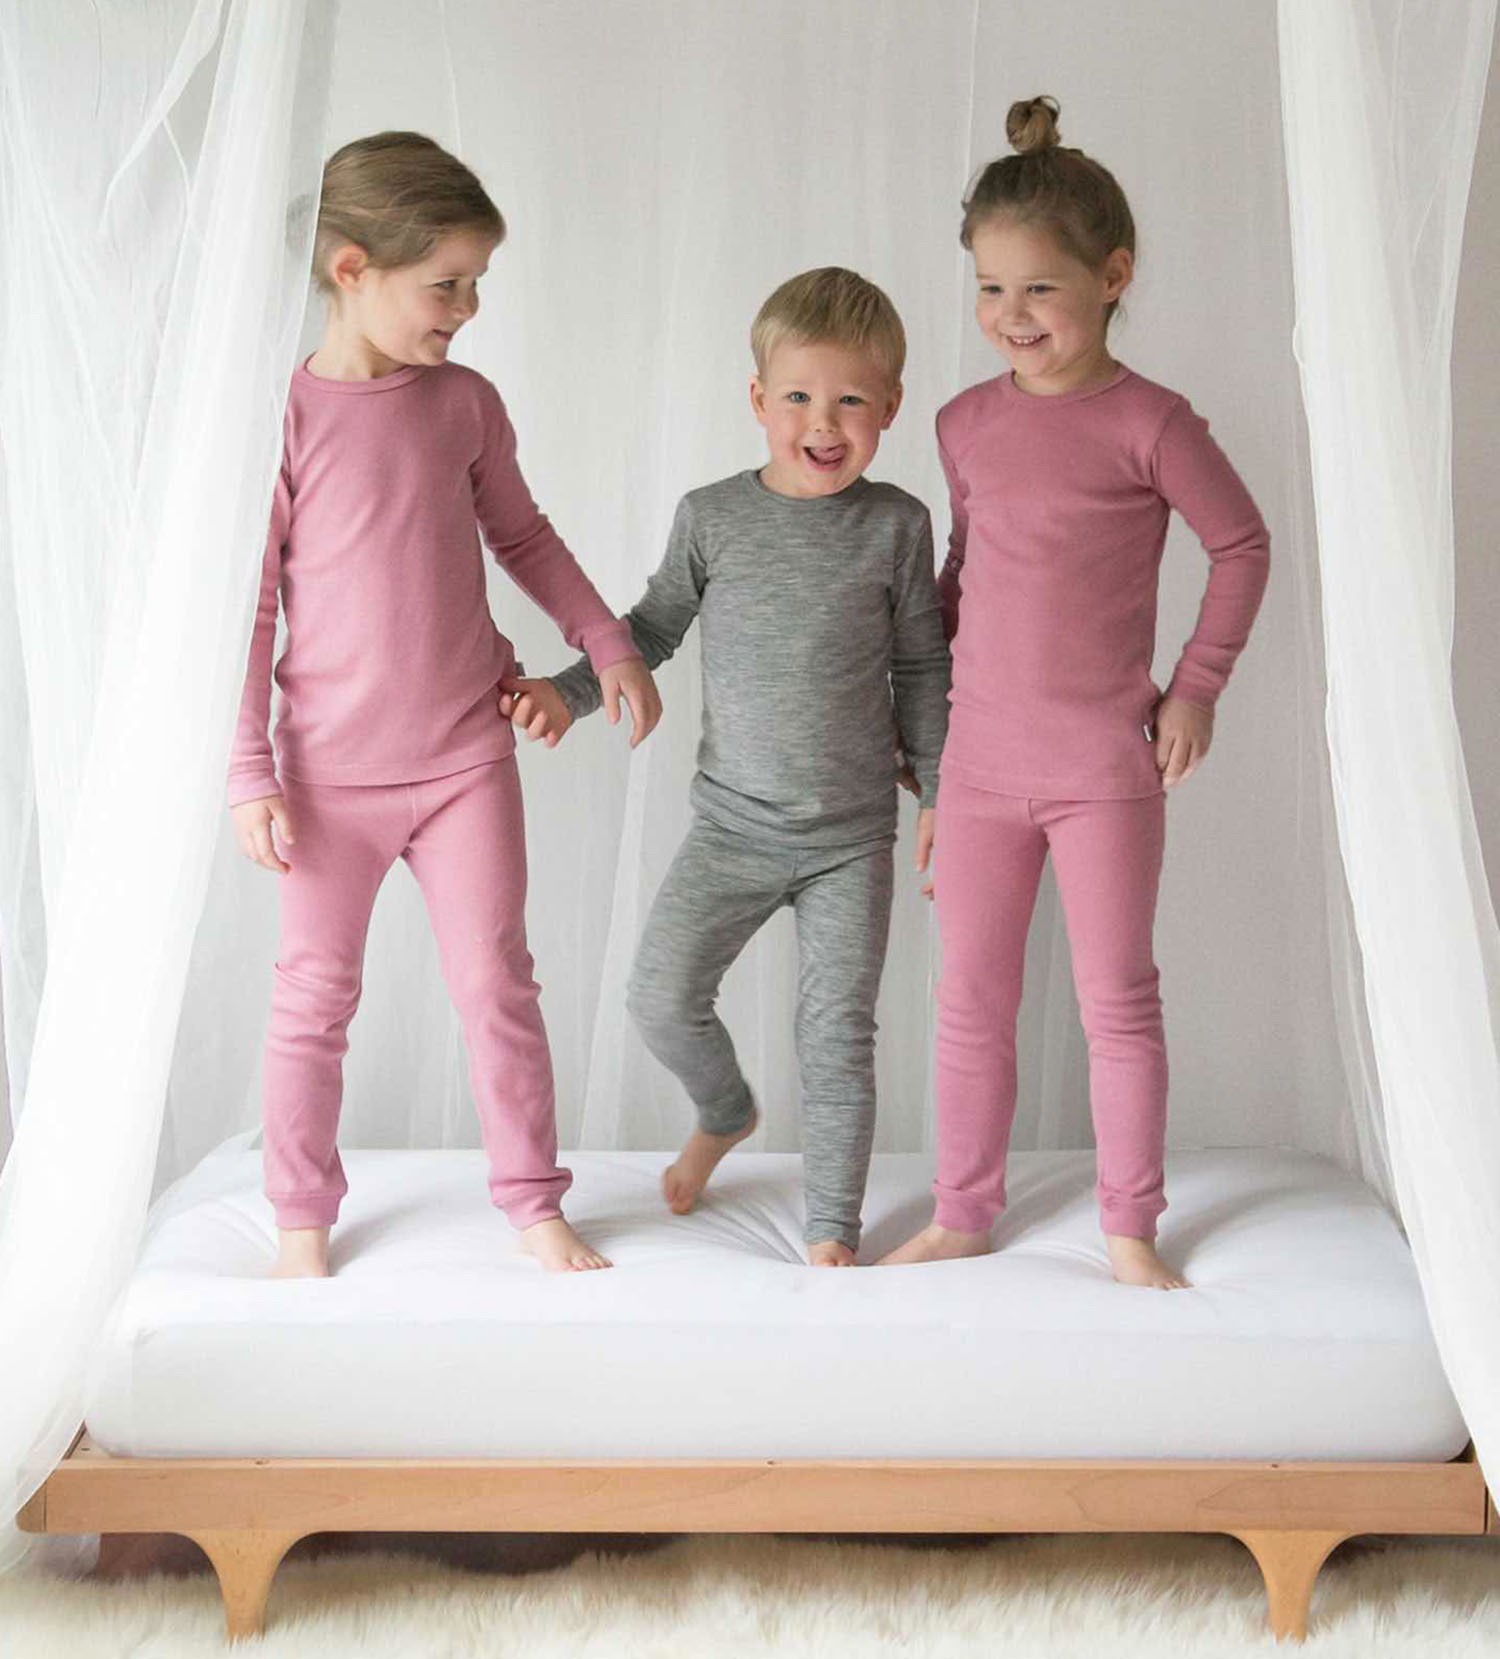 c9b0c1cc182e 12 OF THE BEST KIDS PAJAMAS (FOR ALL AGES) — WINTER DAISY interiors ...